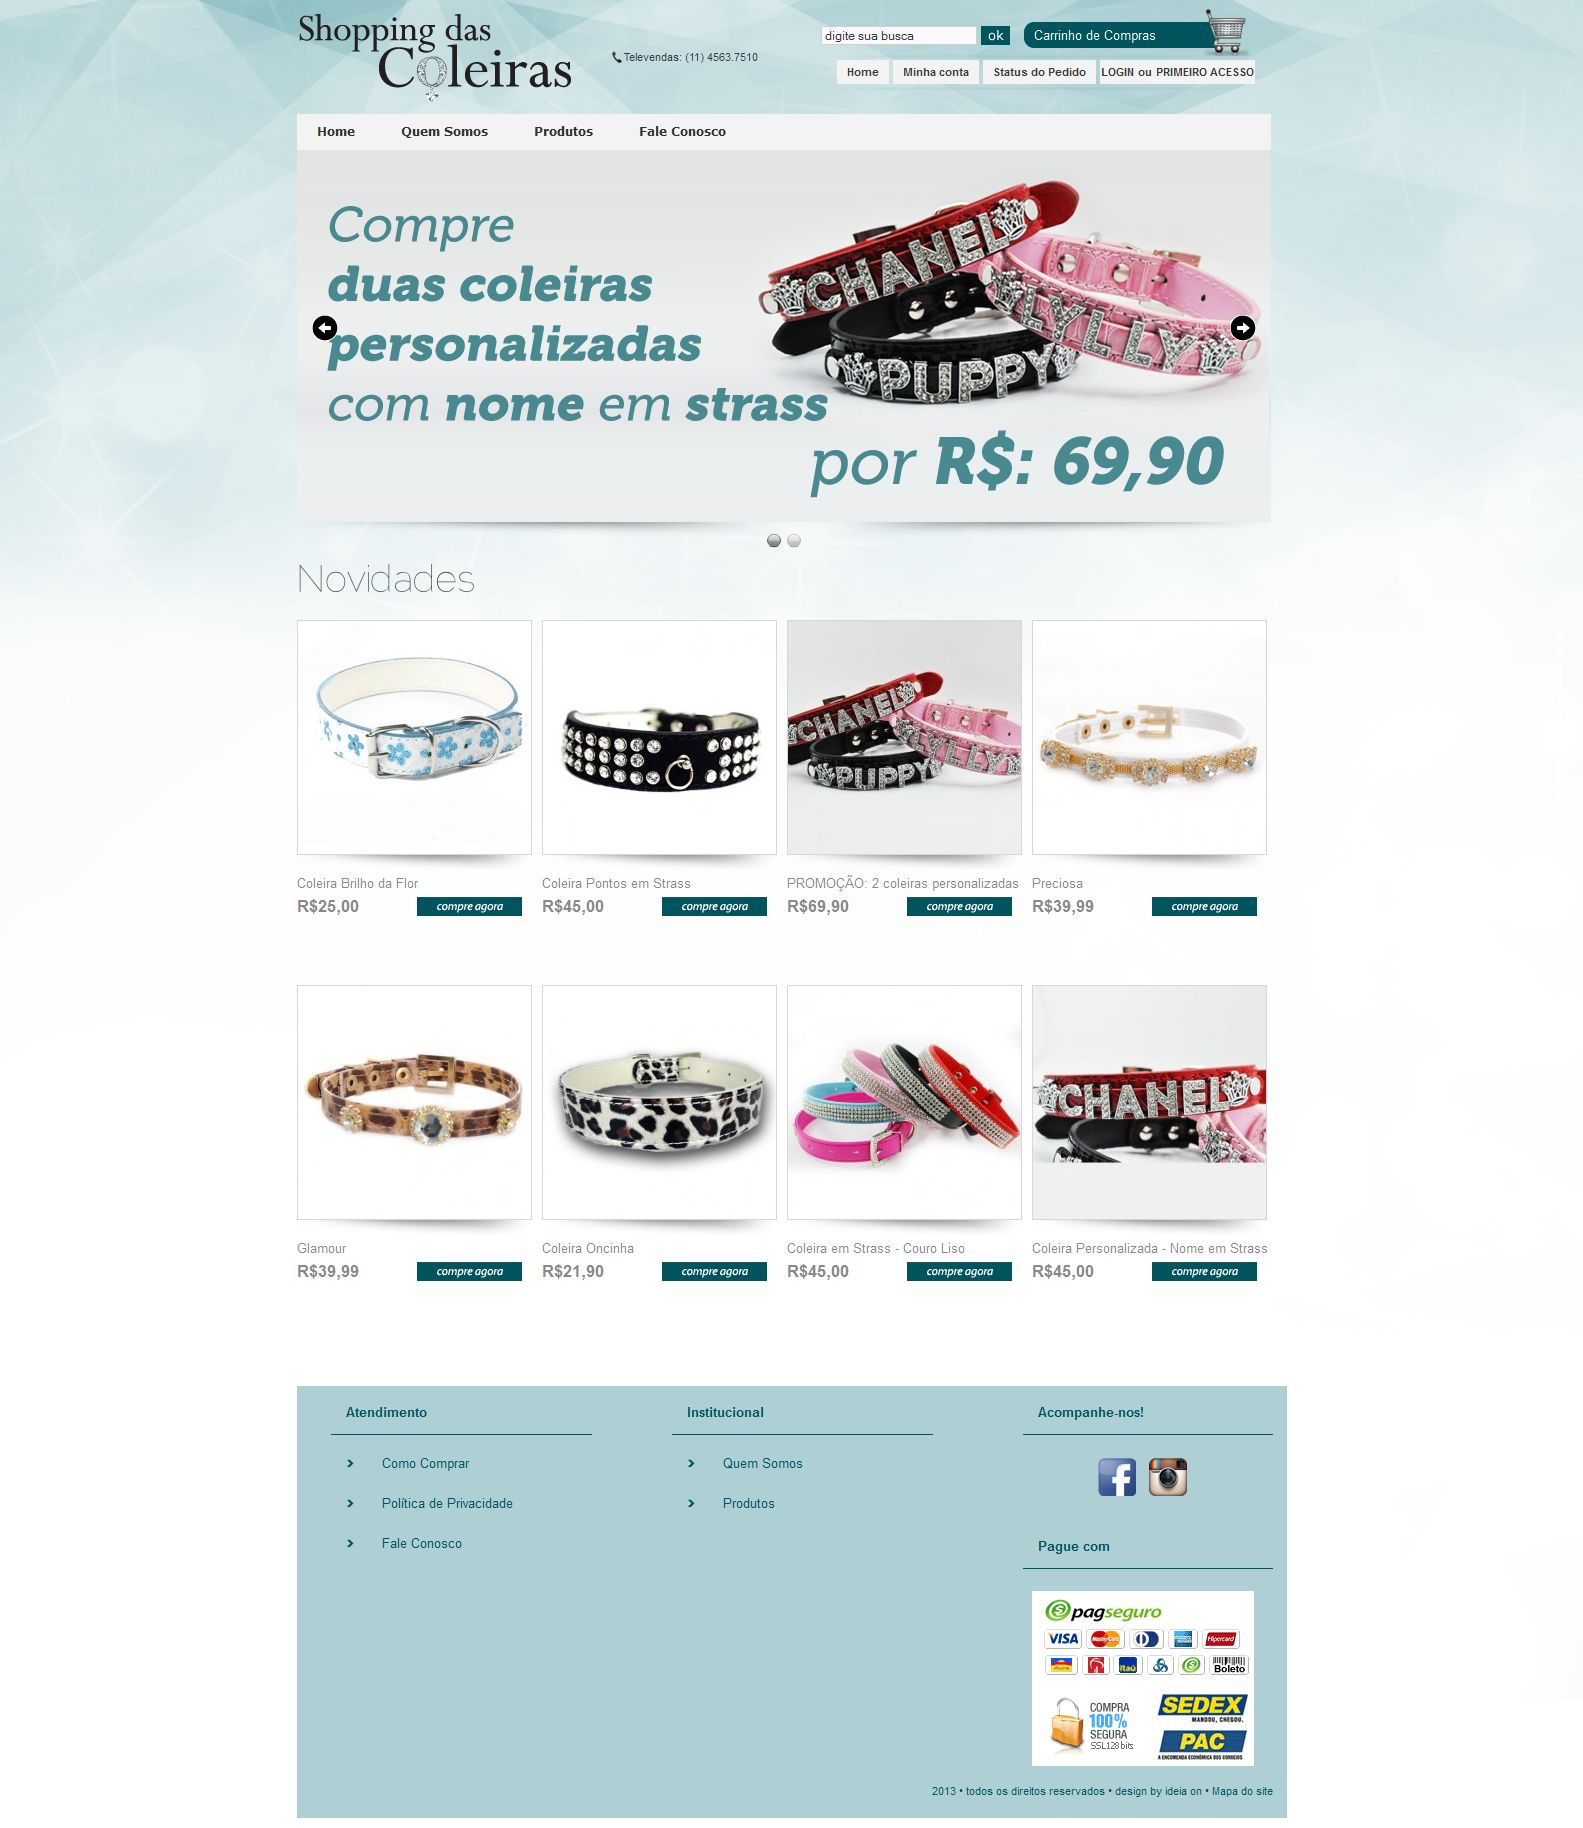 Shopping das Coleiras - Ecommerce